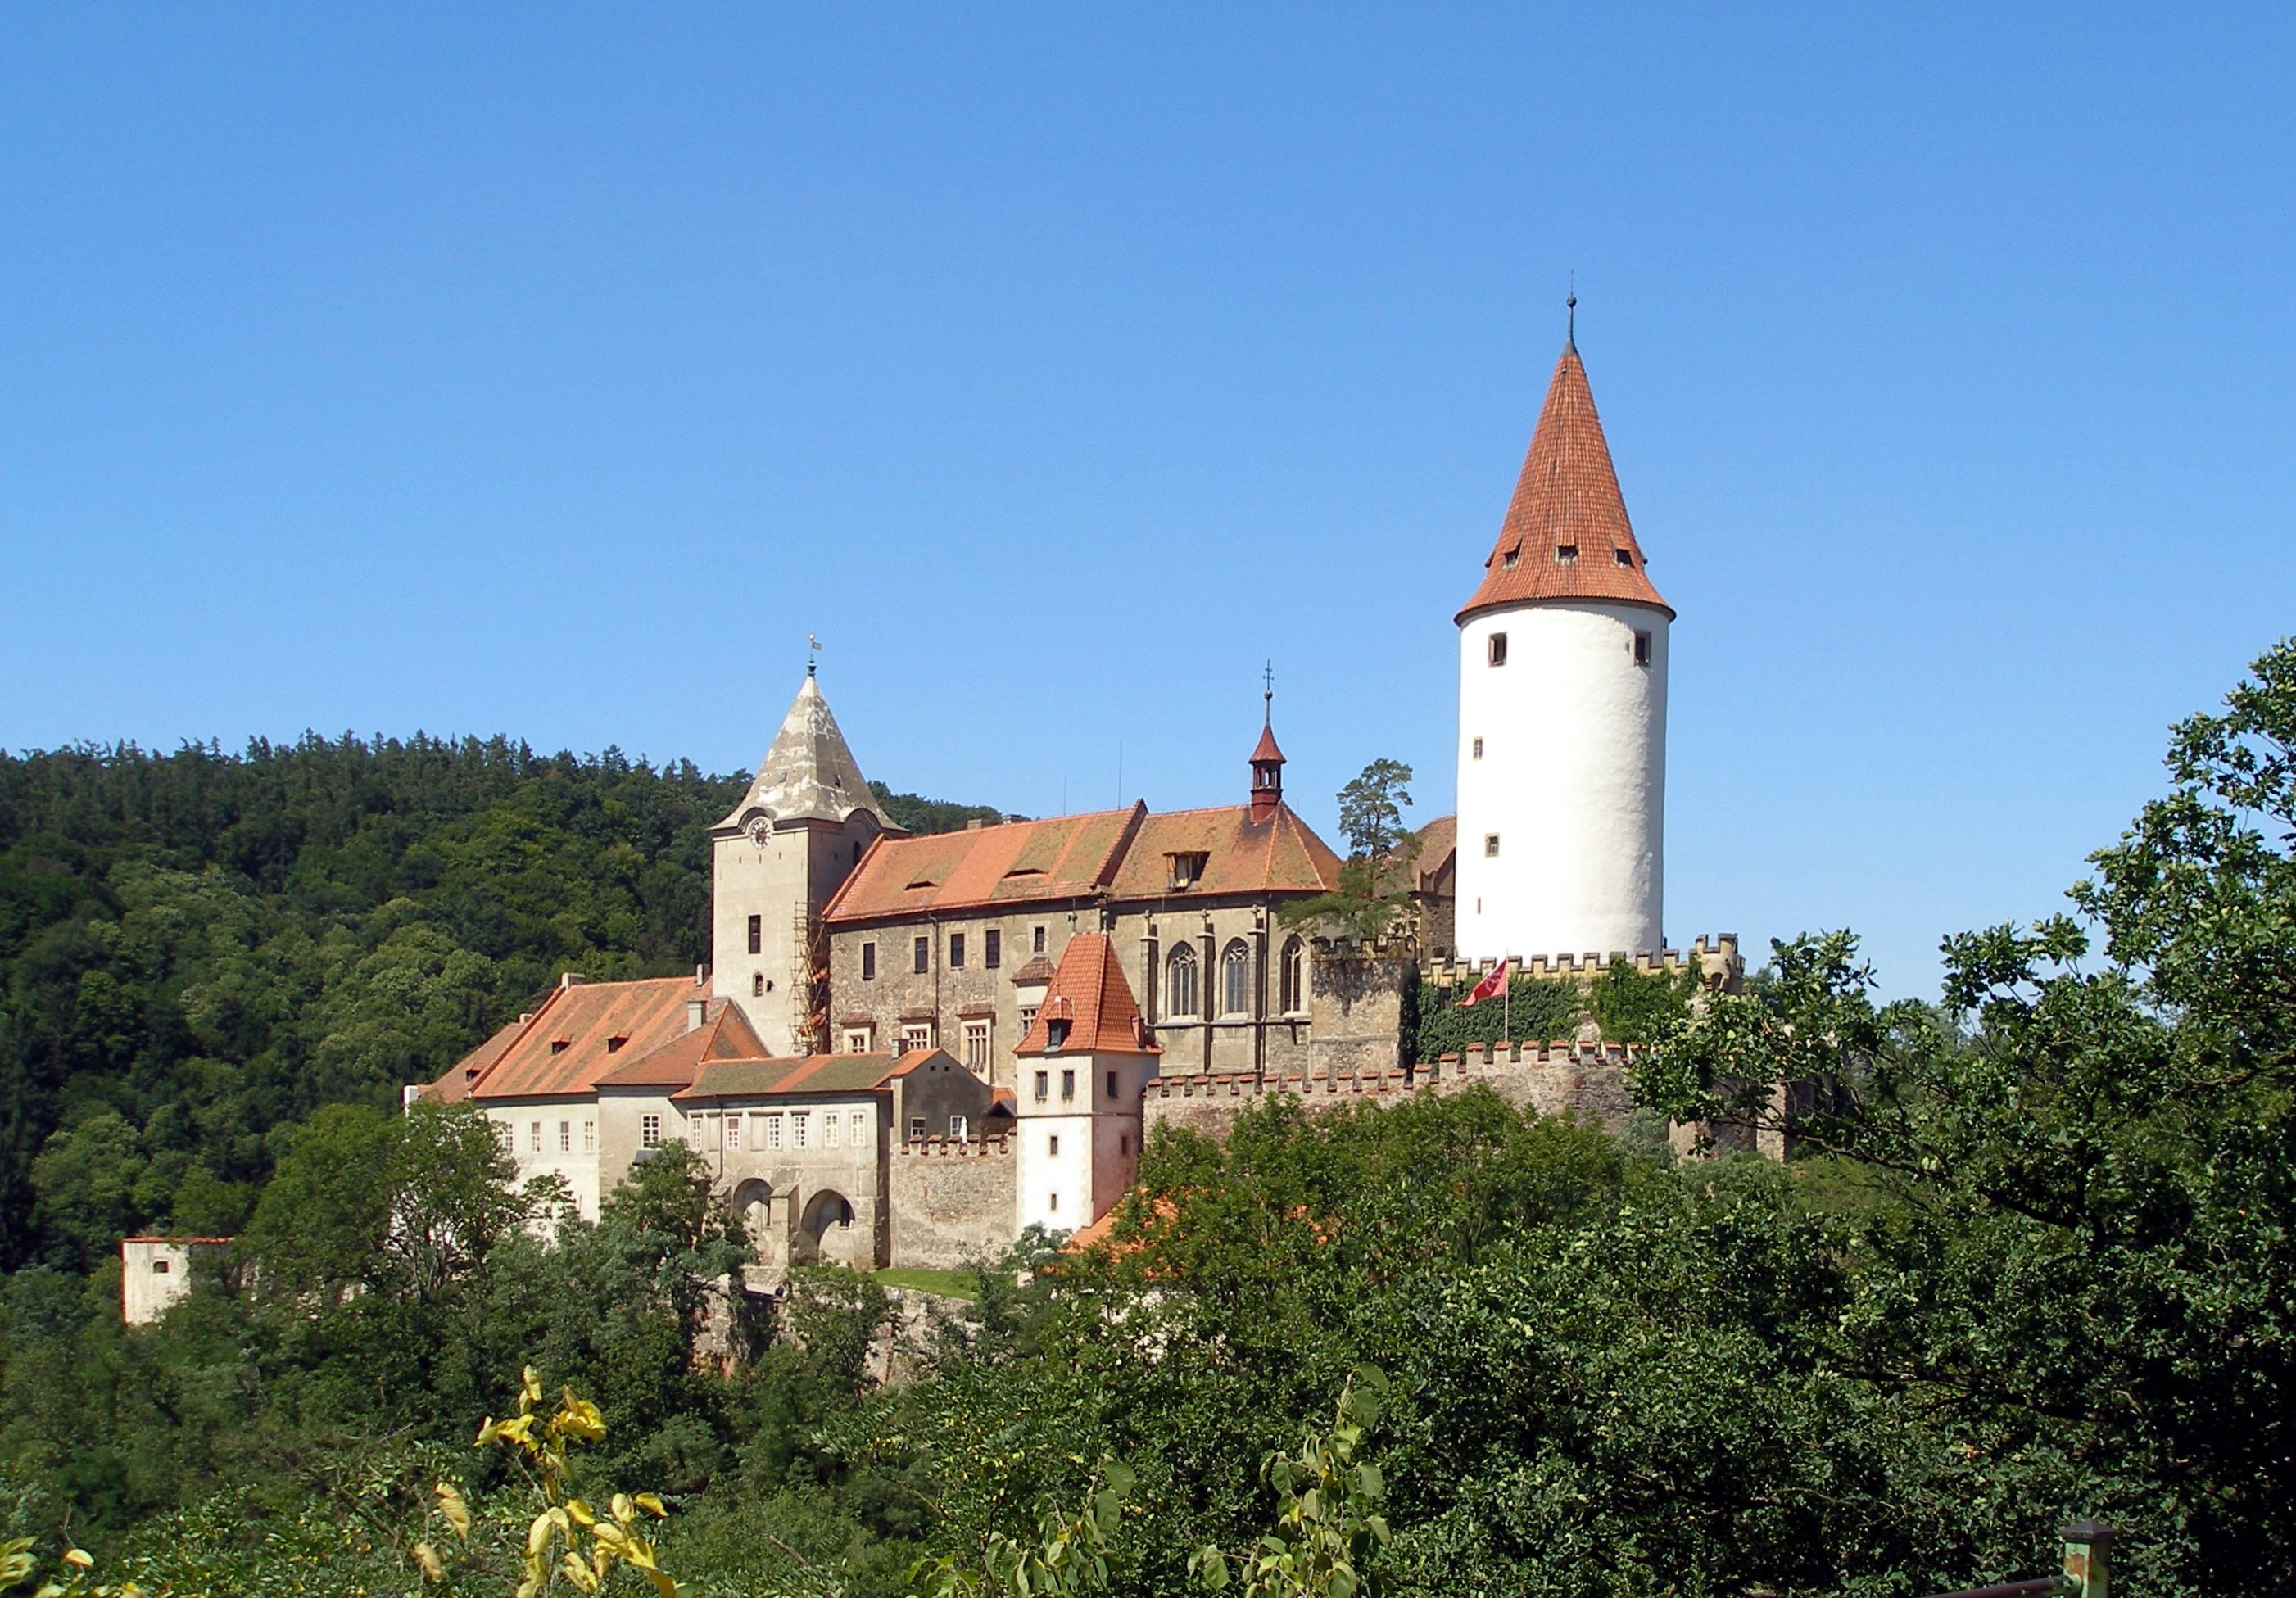 http://upload.wikimedia.org/wikipedia/commons/c/c6/Krivoklat_castle_01.jpg